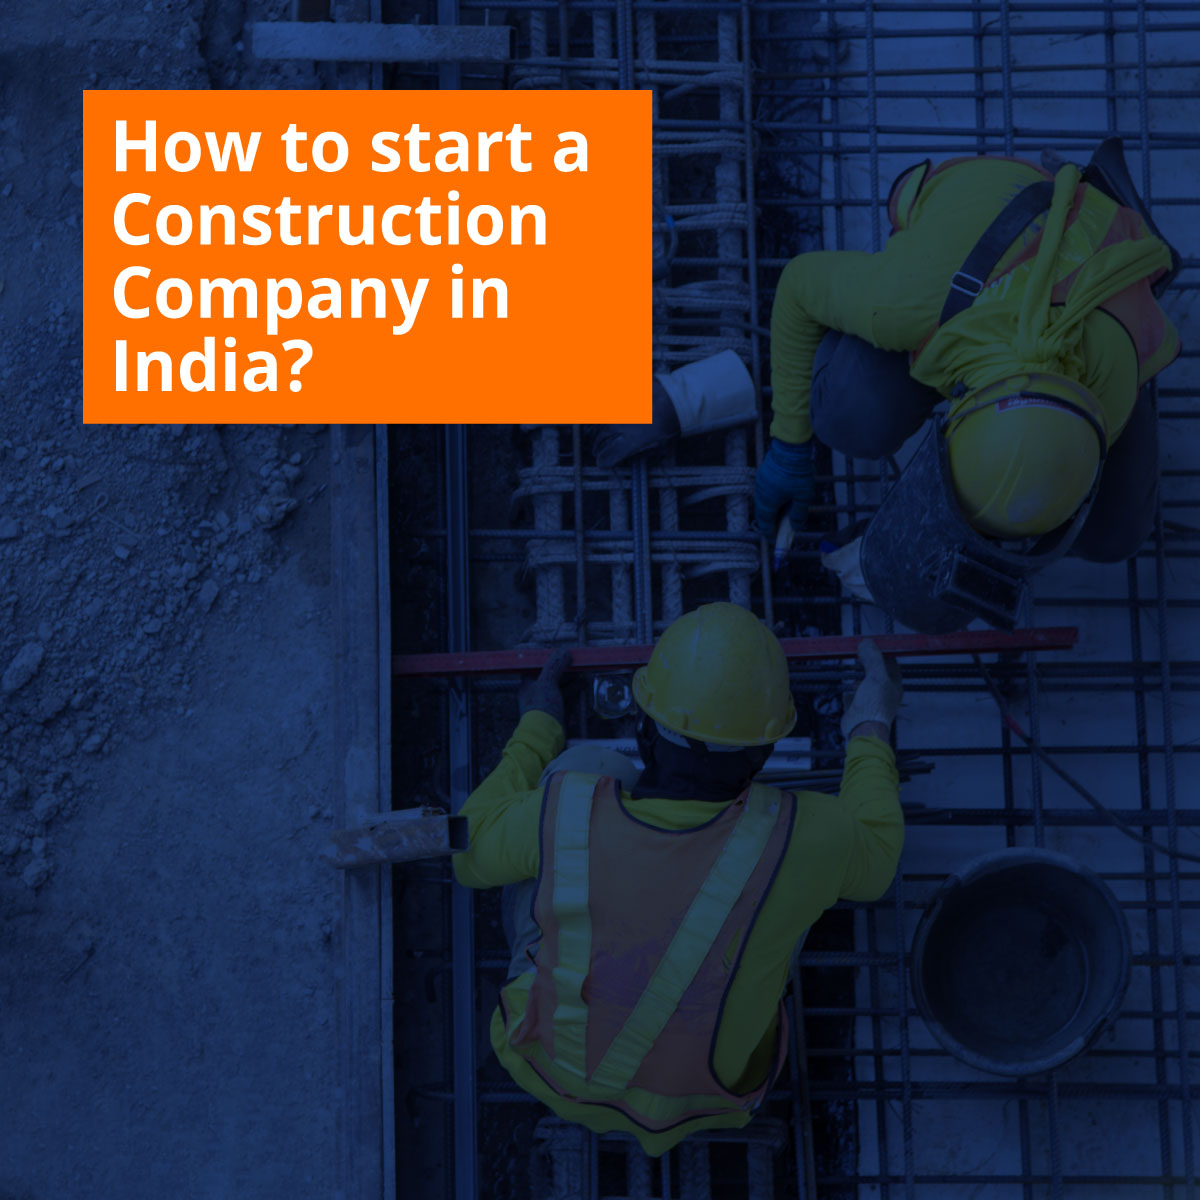 How to start a Construction Company in India